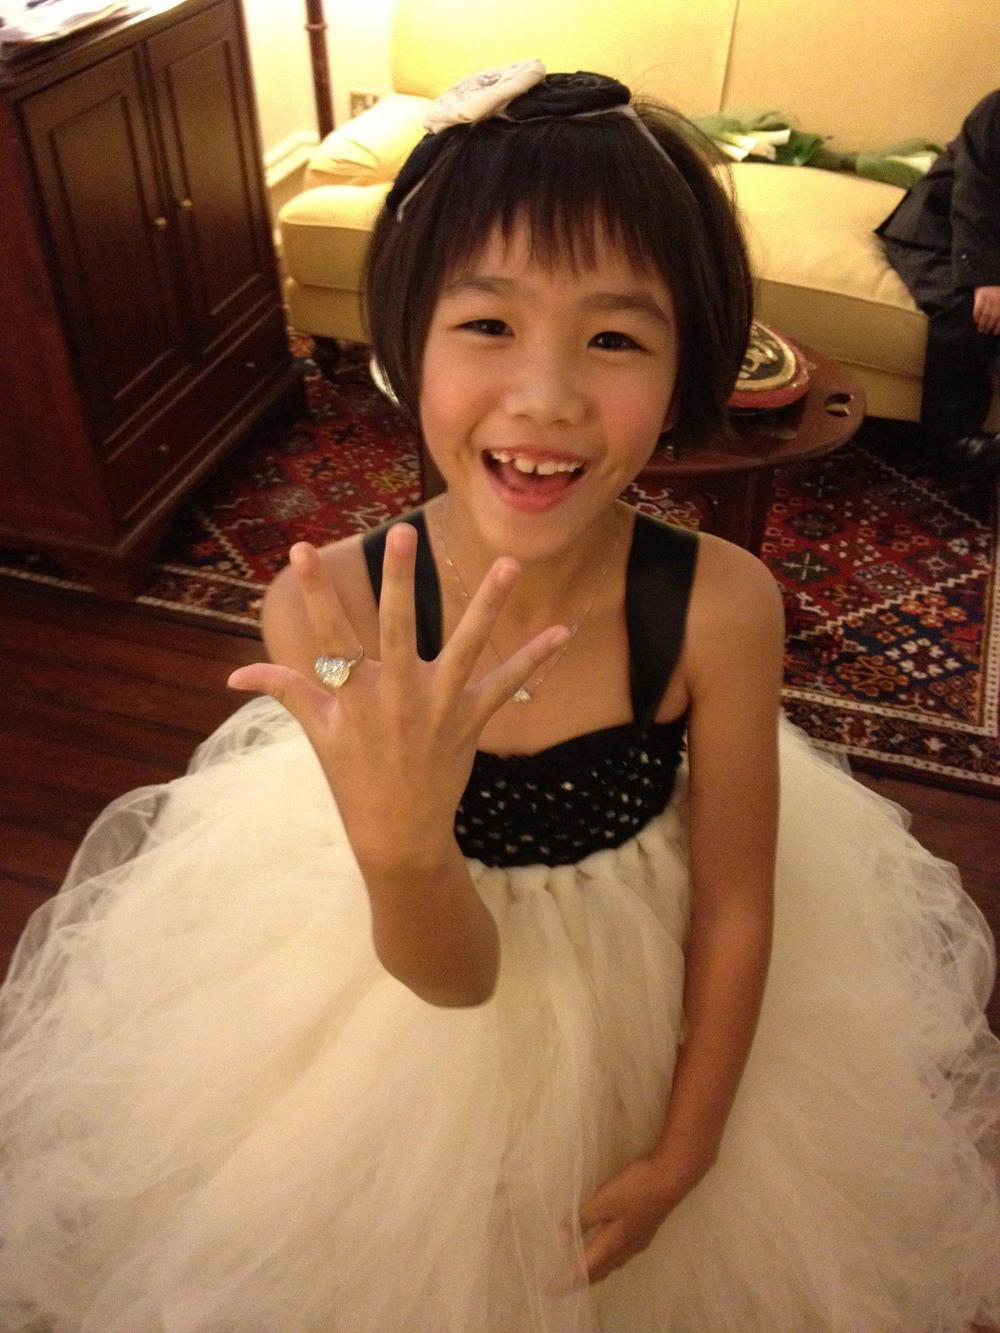 Our adorable flower girl showing off her own bling